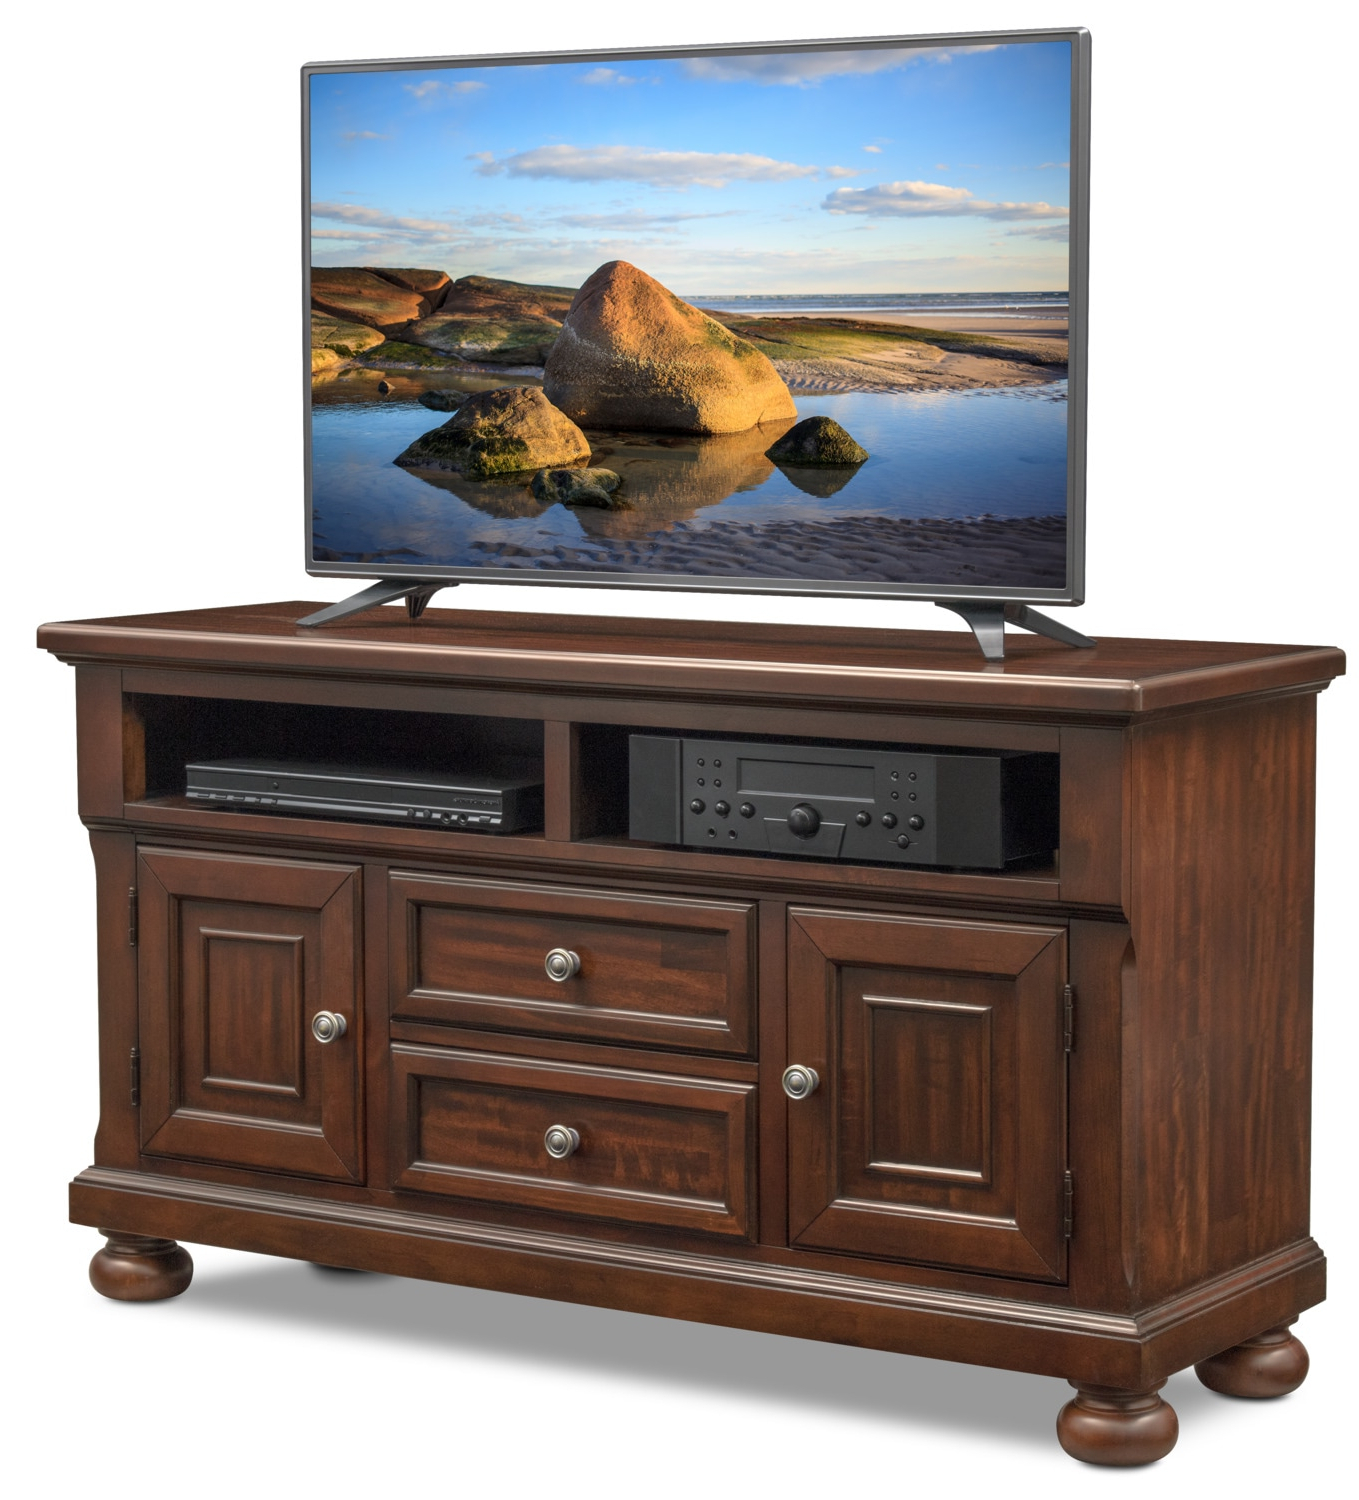 "Cherry Wood Tv Stands Regarding Famous Hanover 52"" Tv Stand – Cherry (View 19 of 20)"